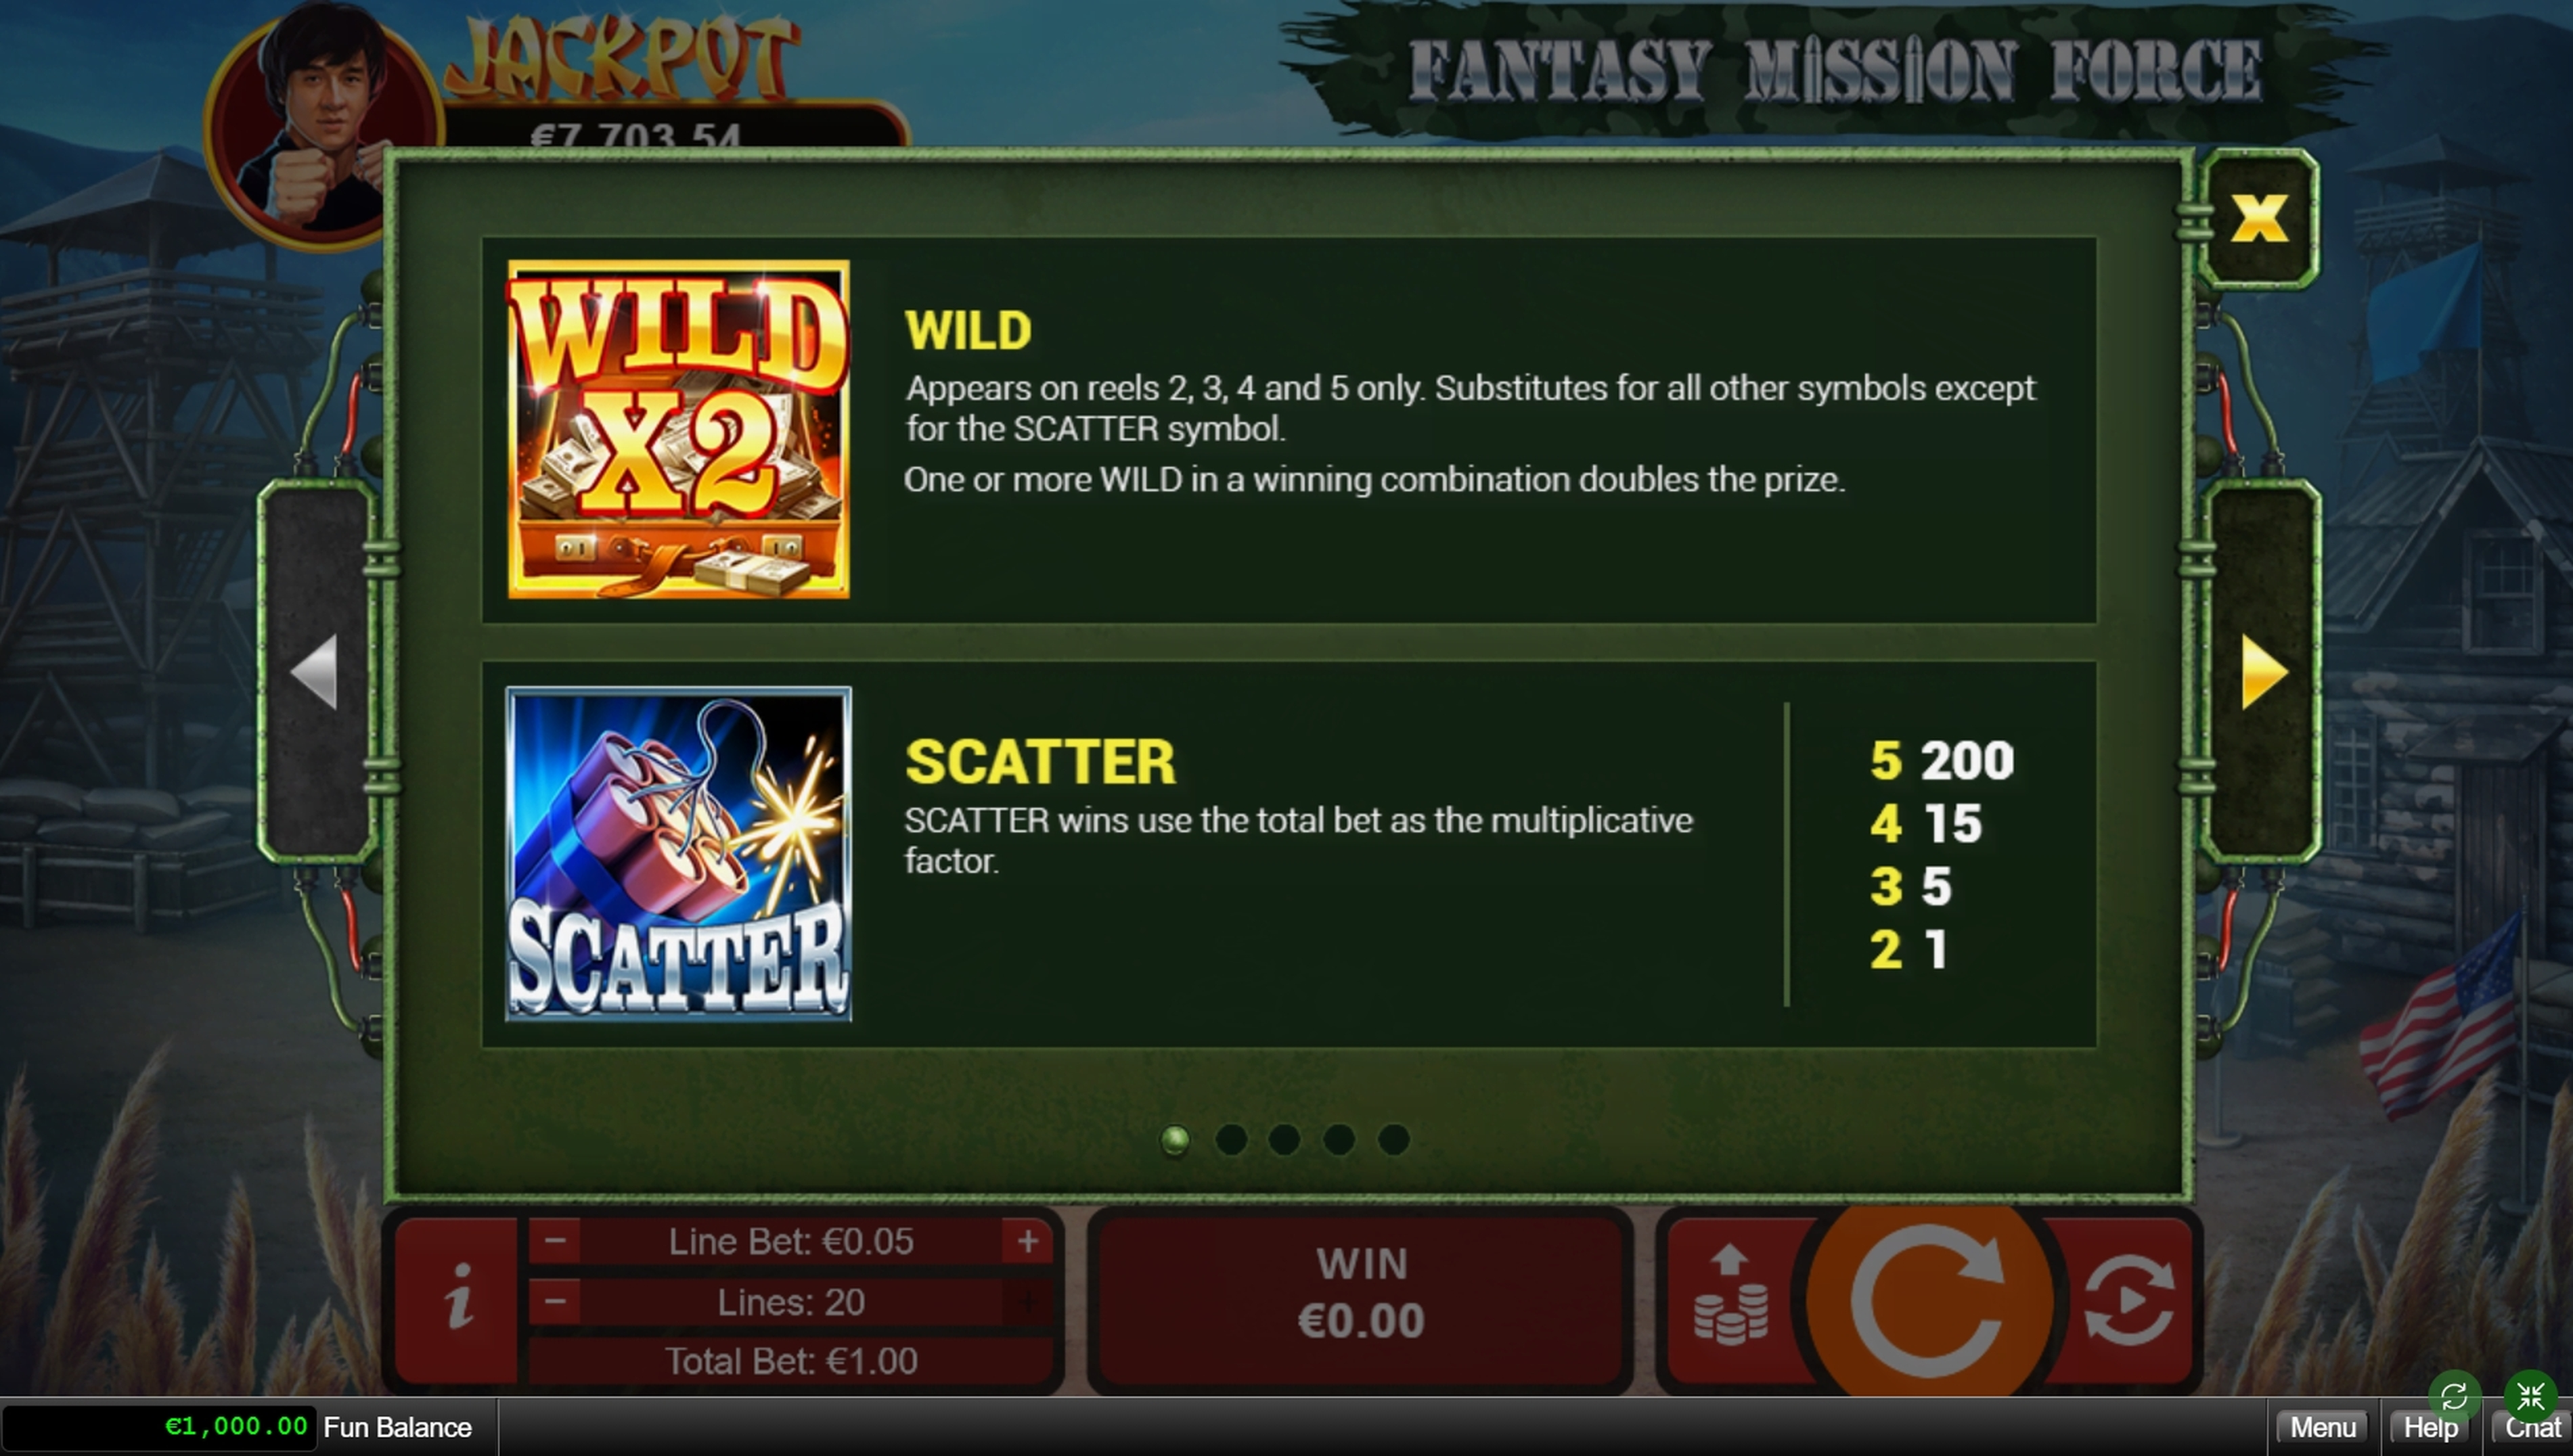 Info of Fantasy Mission Force Slot Game by RTG